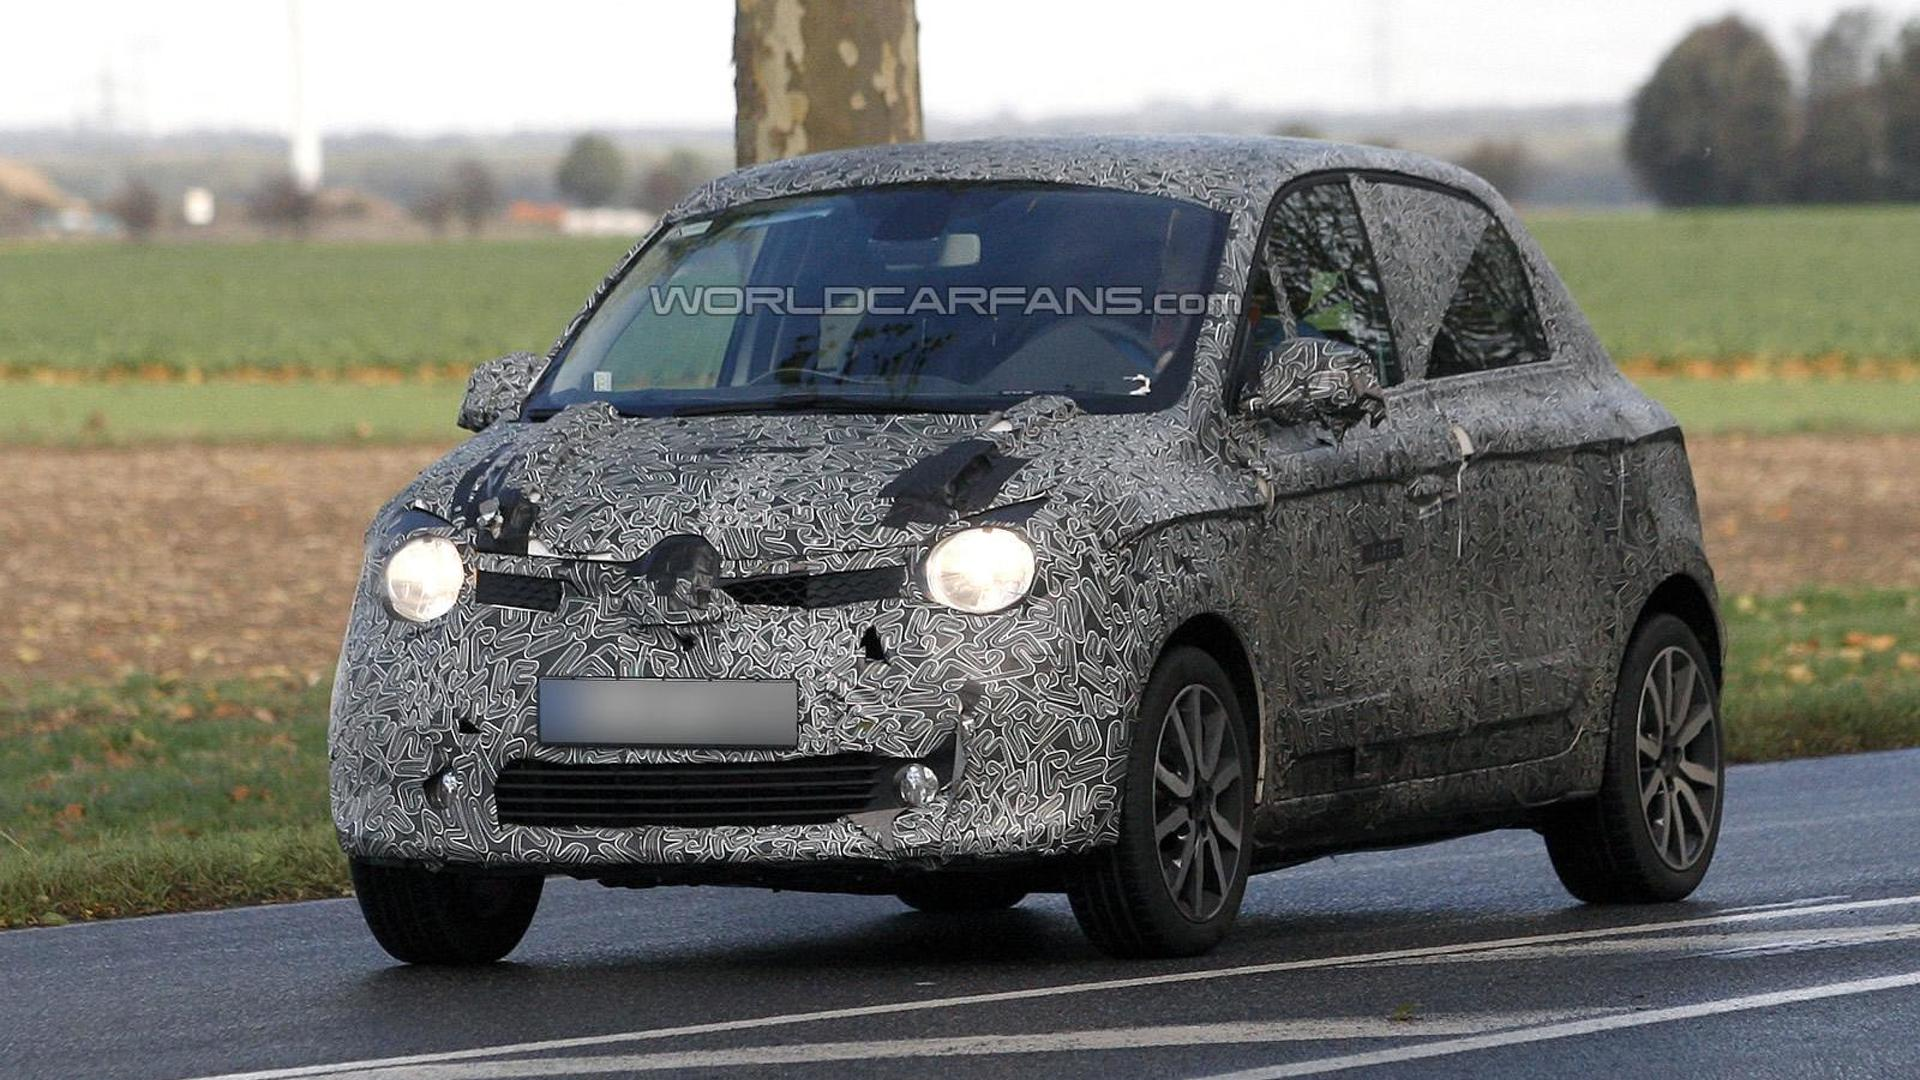 2015 Renault Twingo spied up close